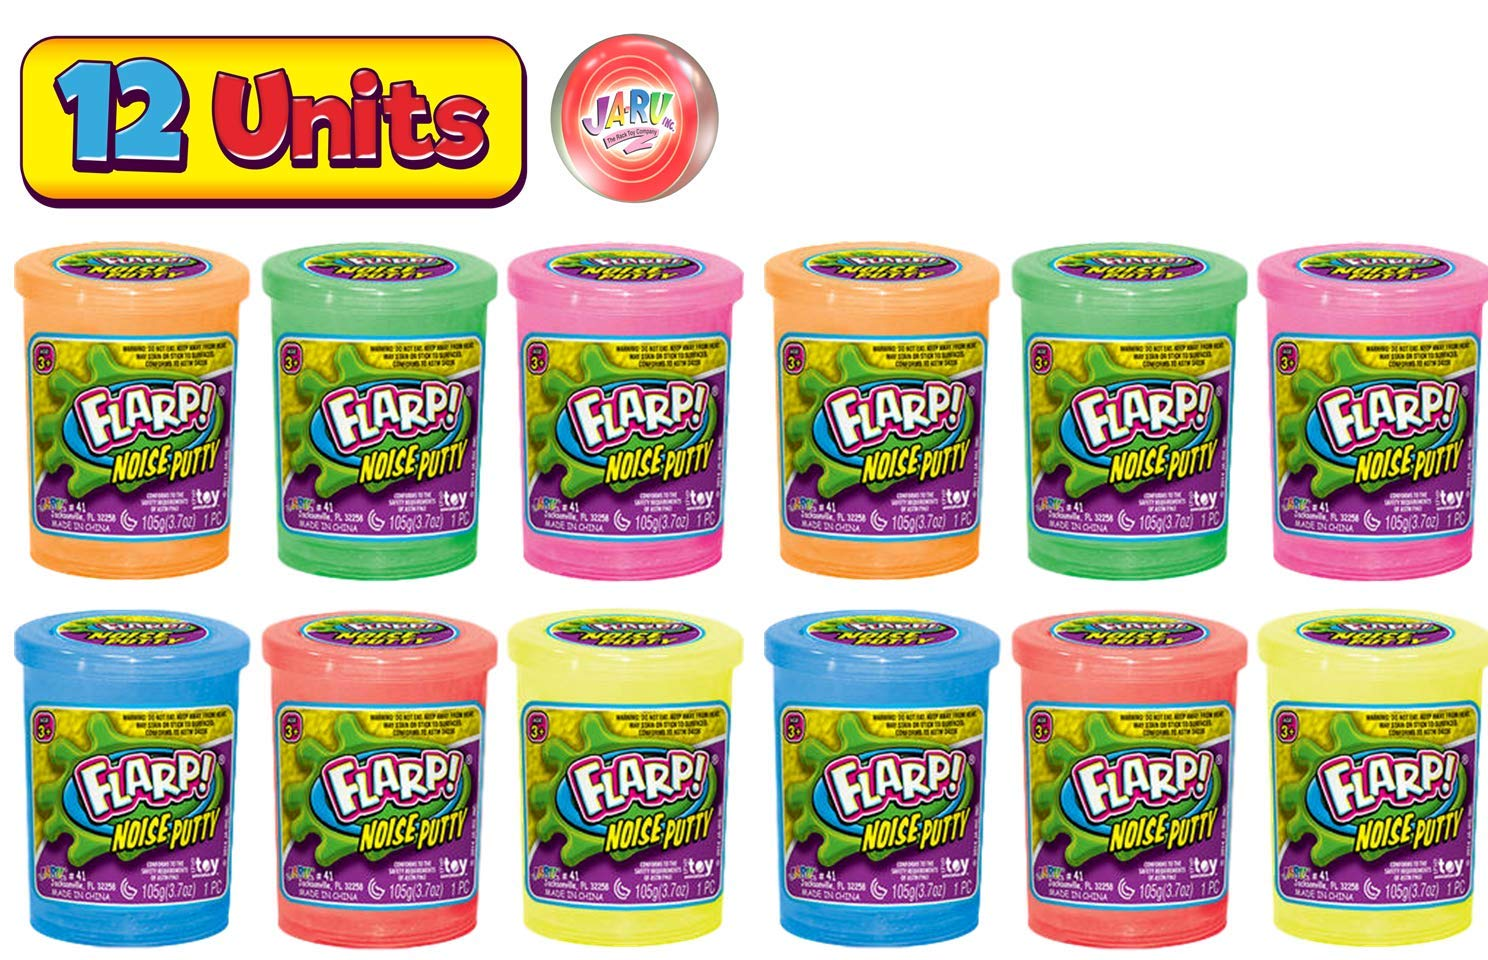 JA-RU Flarp Noise Putty Scented (12 Pack Assorted) Squishy Sensory Toys for Easter, ADHD Autism Stress Toy, Great Party Favors Fidget for Kids and Adults Boys & Girls. Plus 1 Bouncy Ball 10041-12p